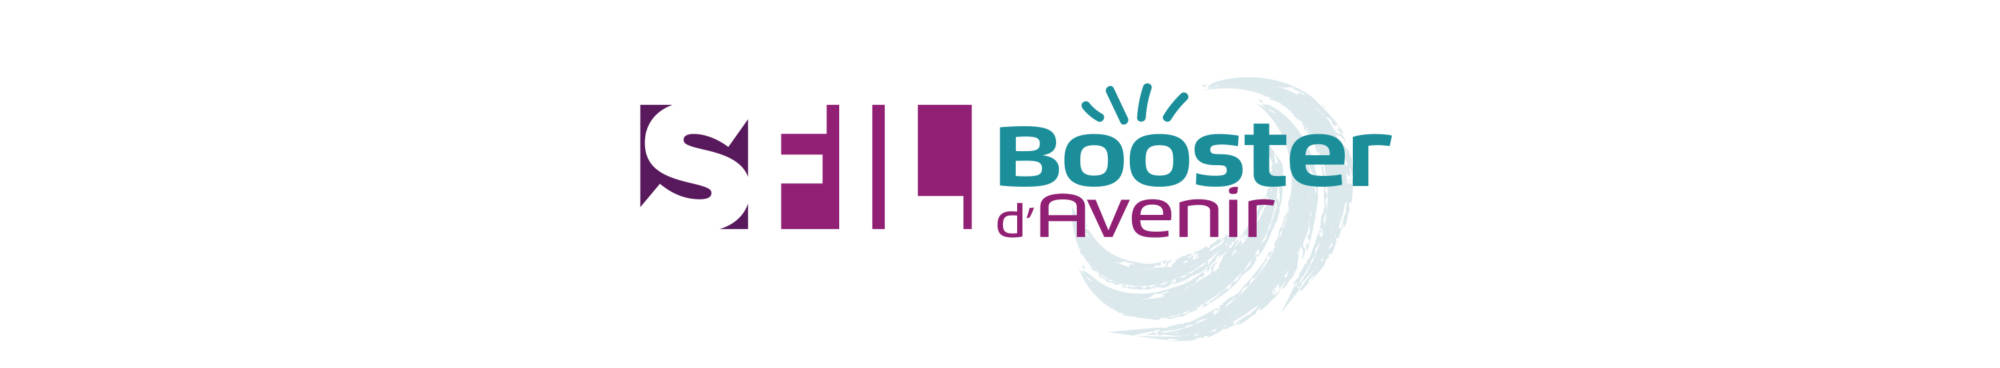 Convention SFIL Booster d'Avenir